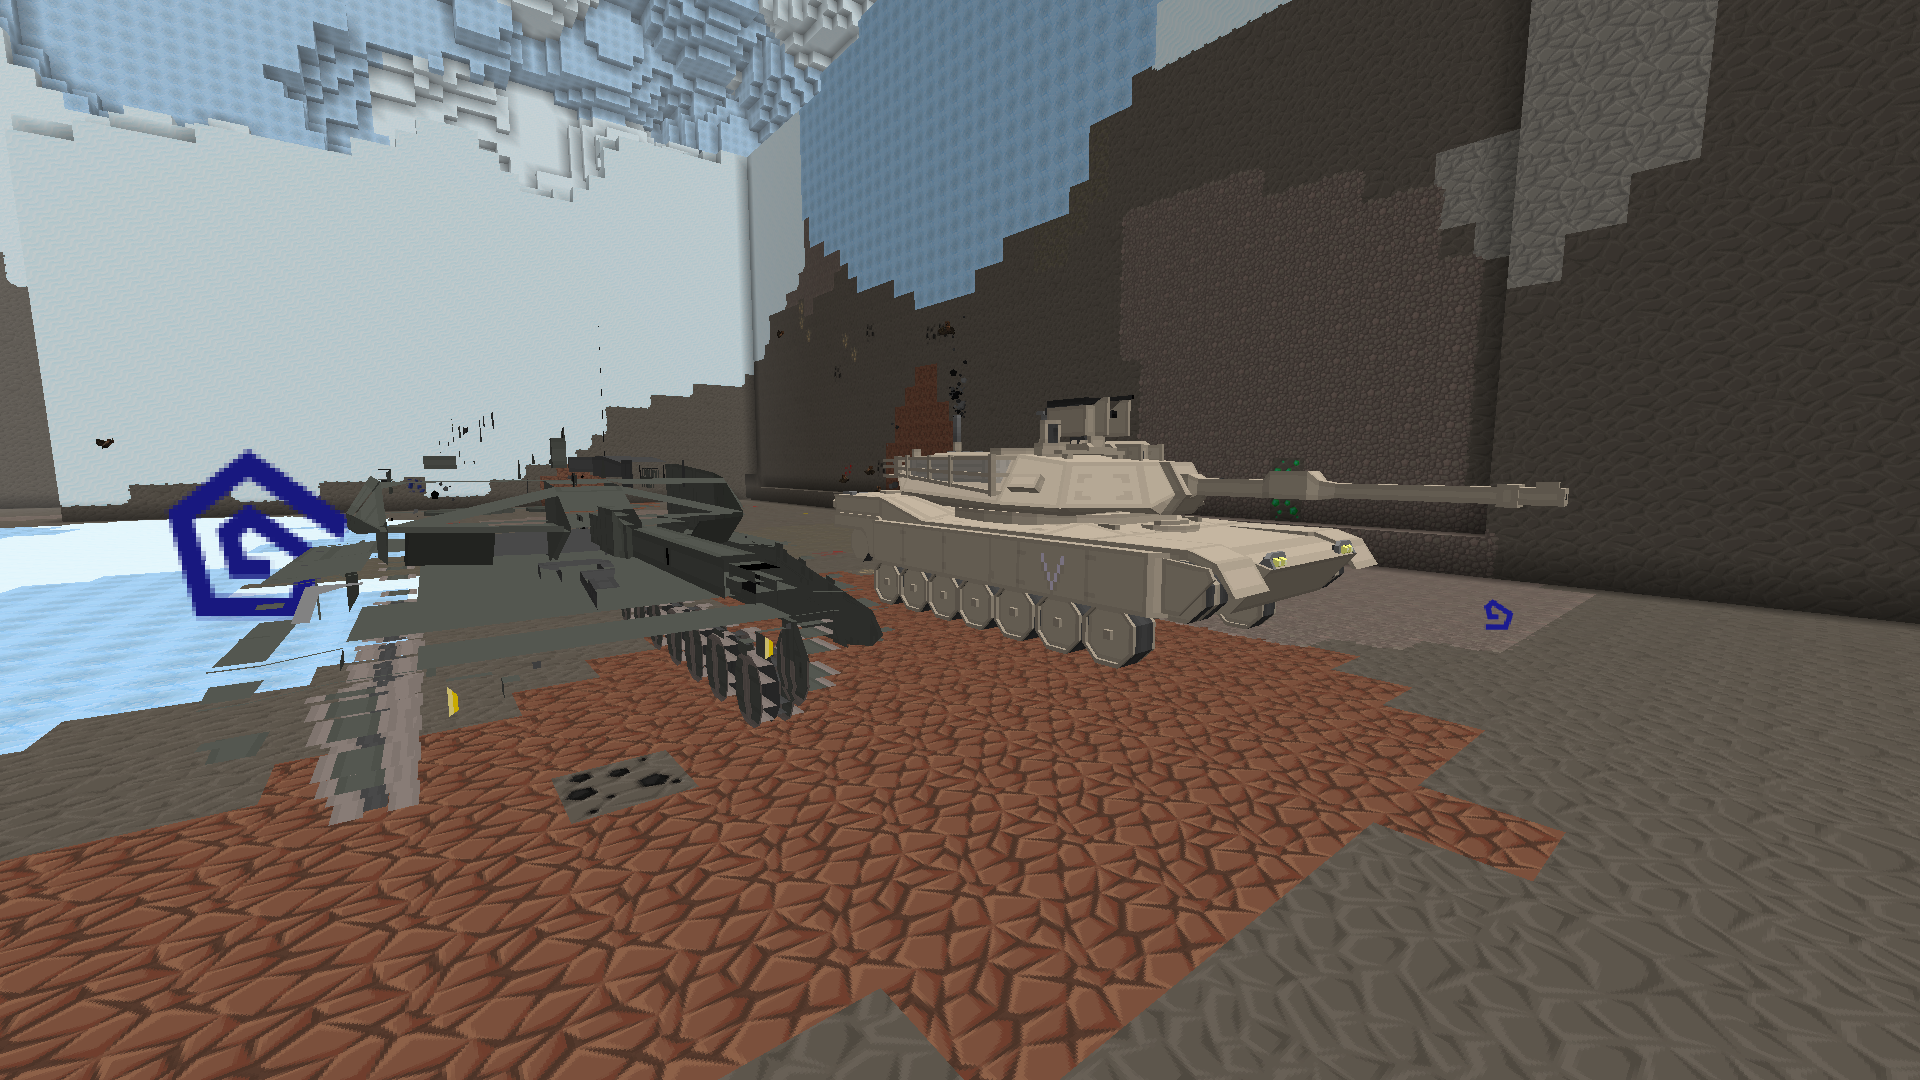 Flan S Mod 5 5 2 Update 1 12 2 100s Of New Skins Helicopters Mechas Planes Vehicles 3d Guns Multiplayer Tdm Ctf Minecraft Mods Mapping And Modding Java Edition Minecraft Forum Minecraft Forum